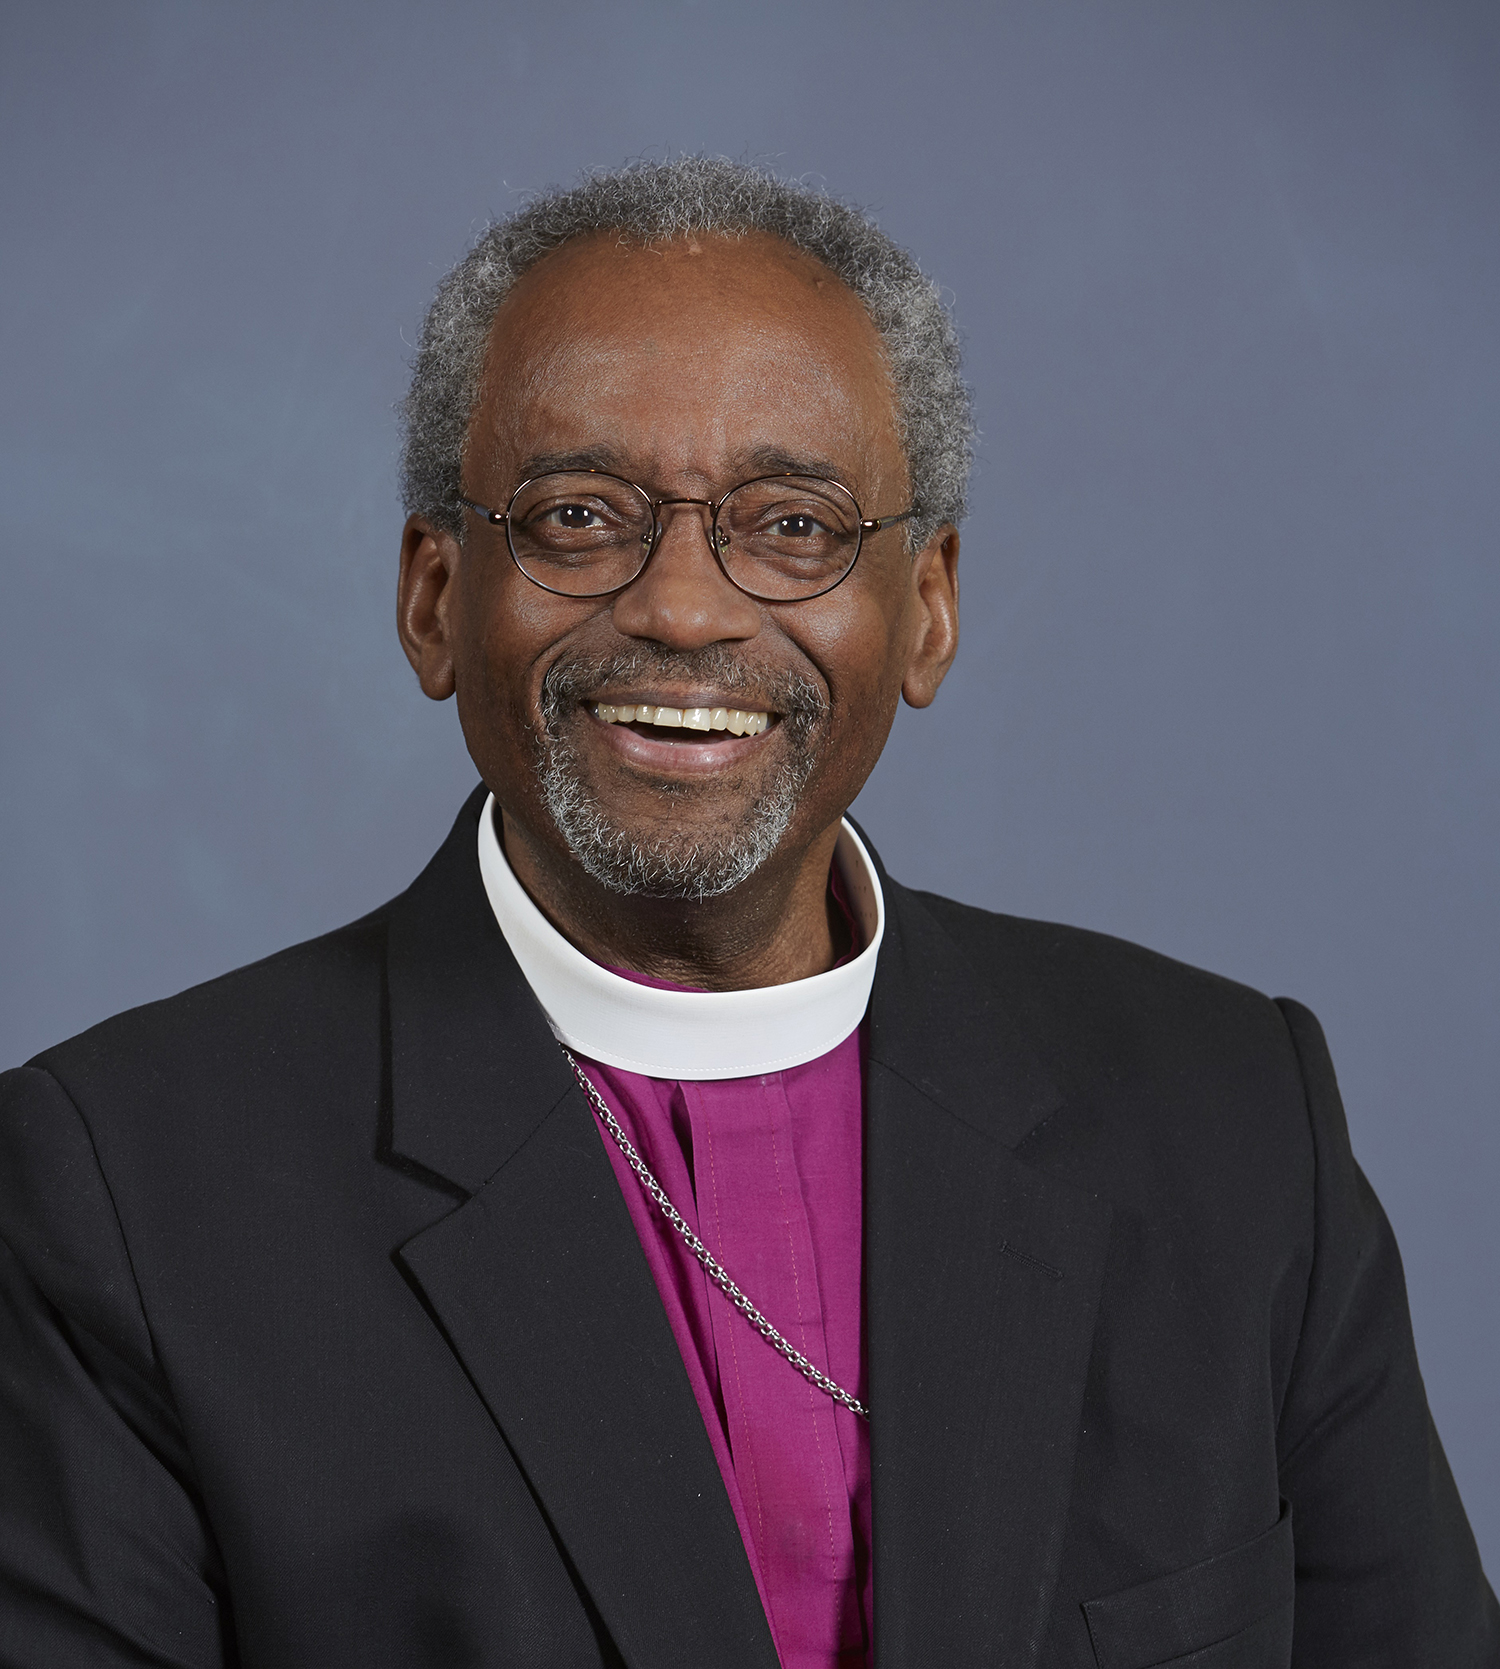 Biography: The Most Rev. Michael Curry